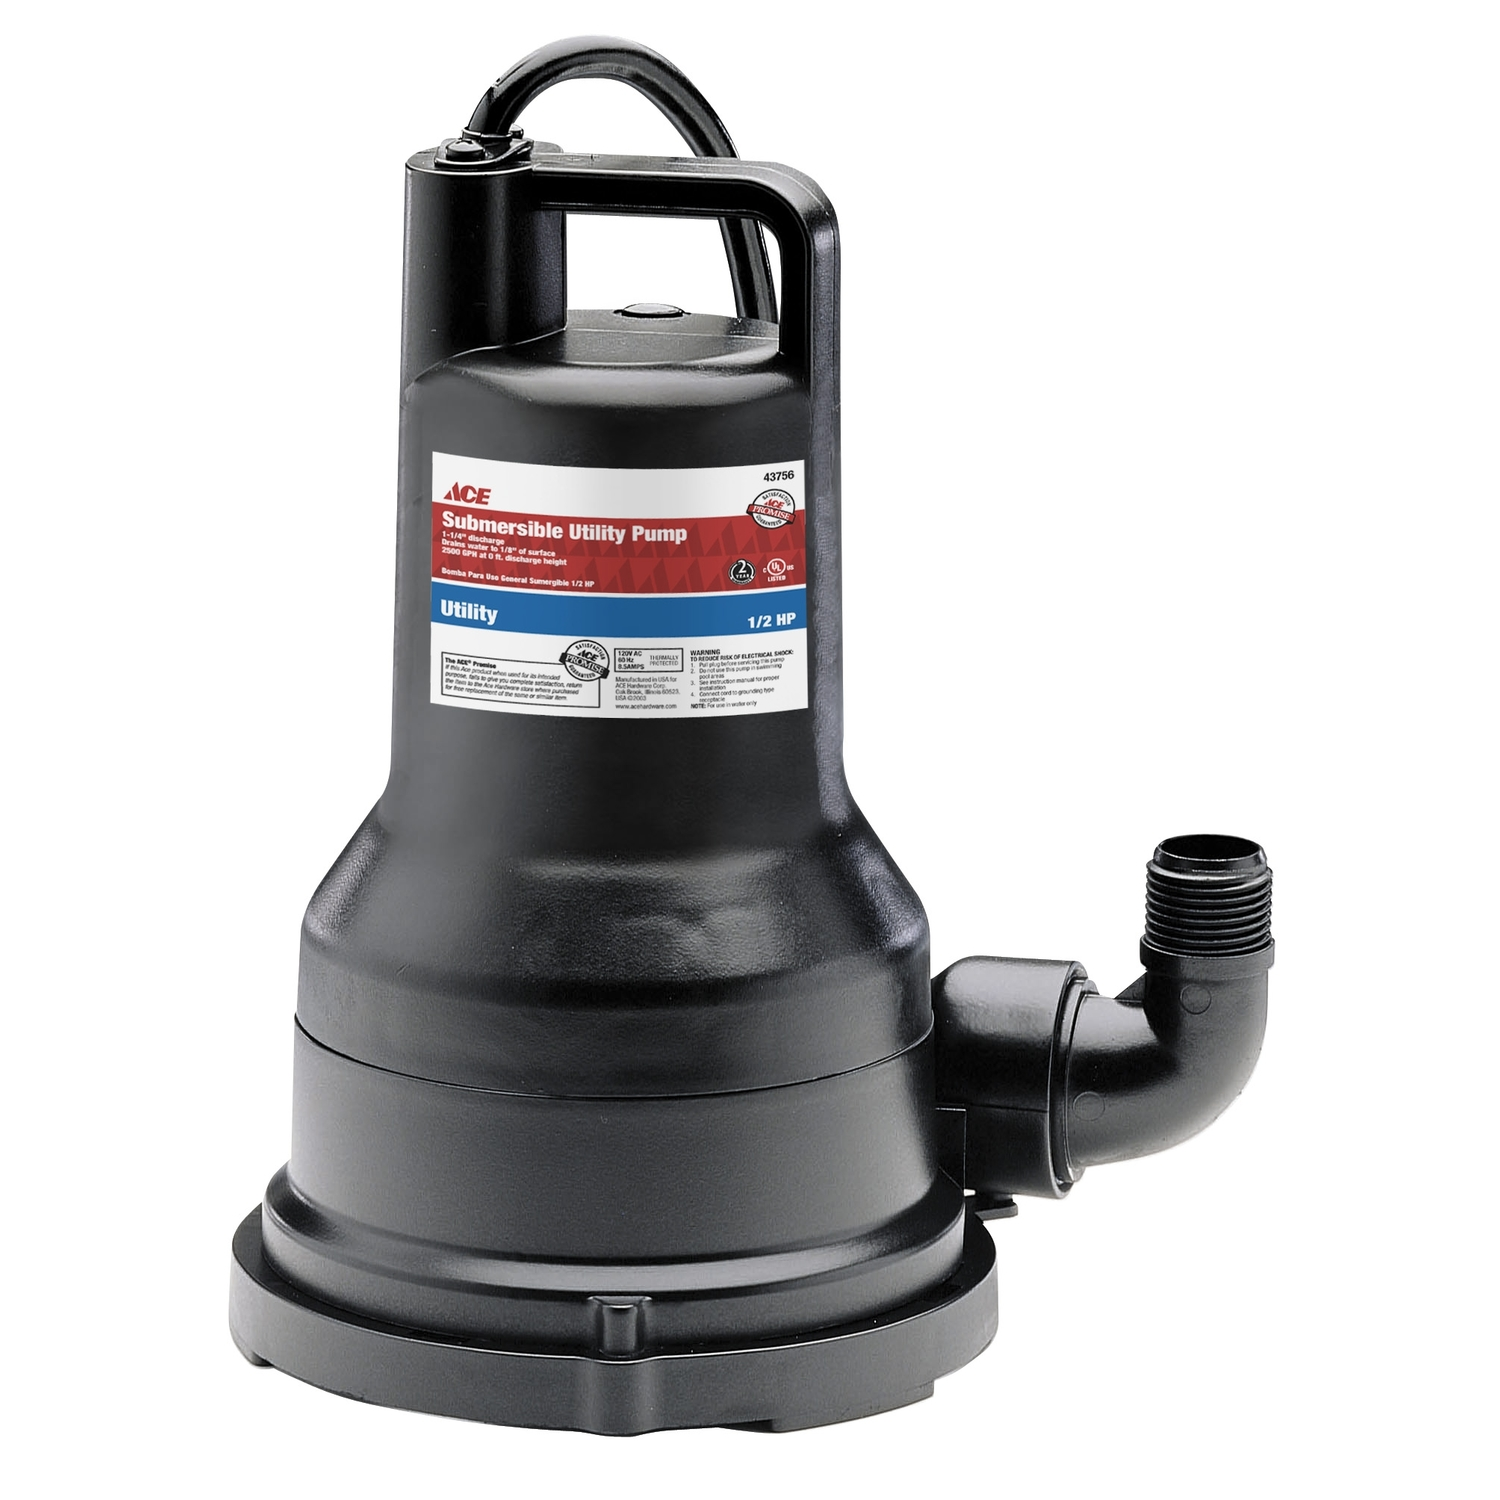 Ace  Wayne  Thermoplastic  Utility Pump  1/2 hp 2600 gph 120 volts